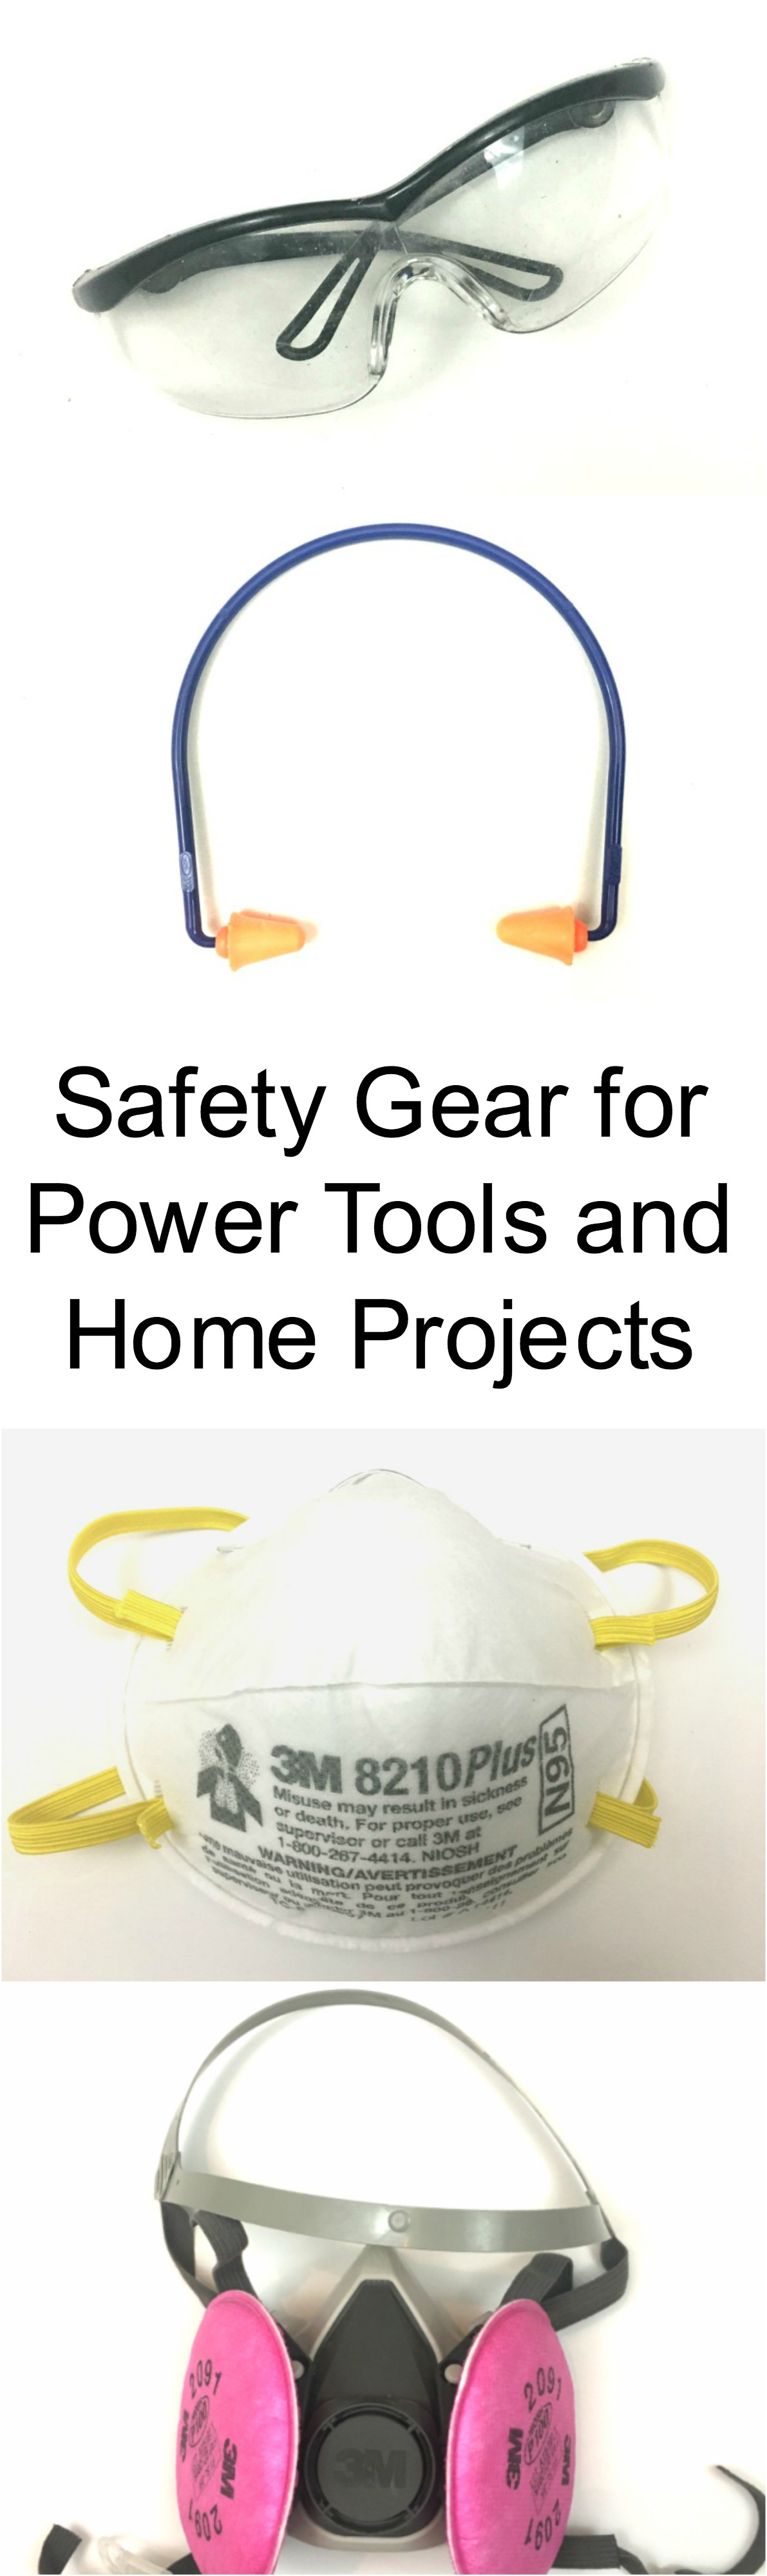 Makes sure you have the basic safety gear when working with power tools and home projects